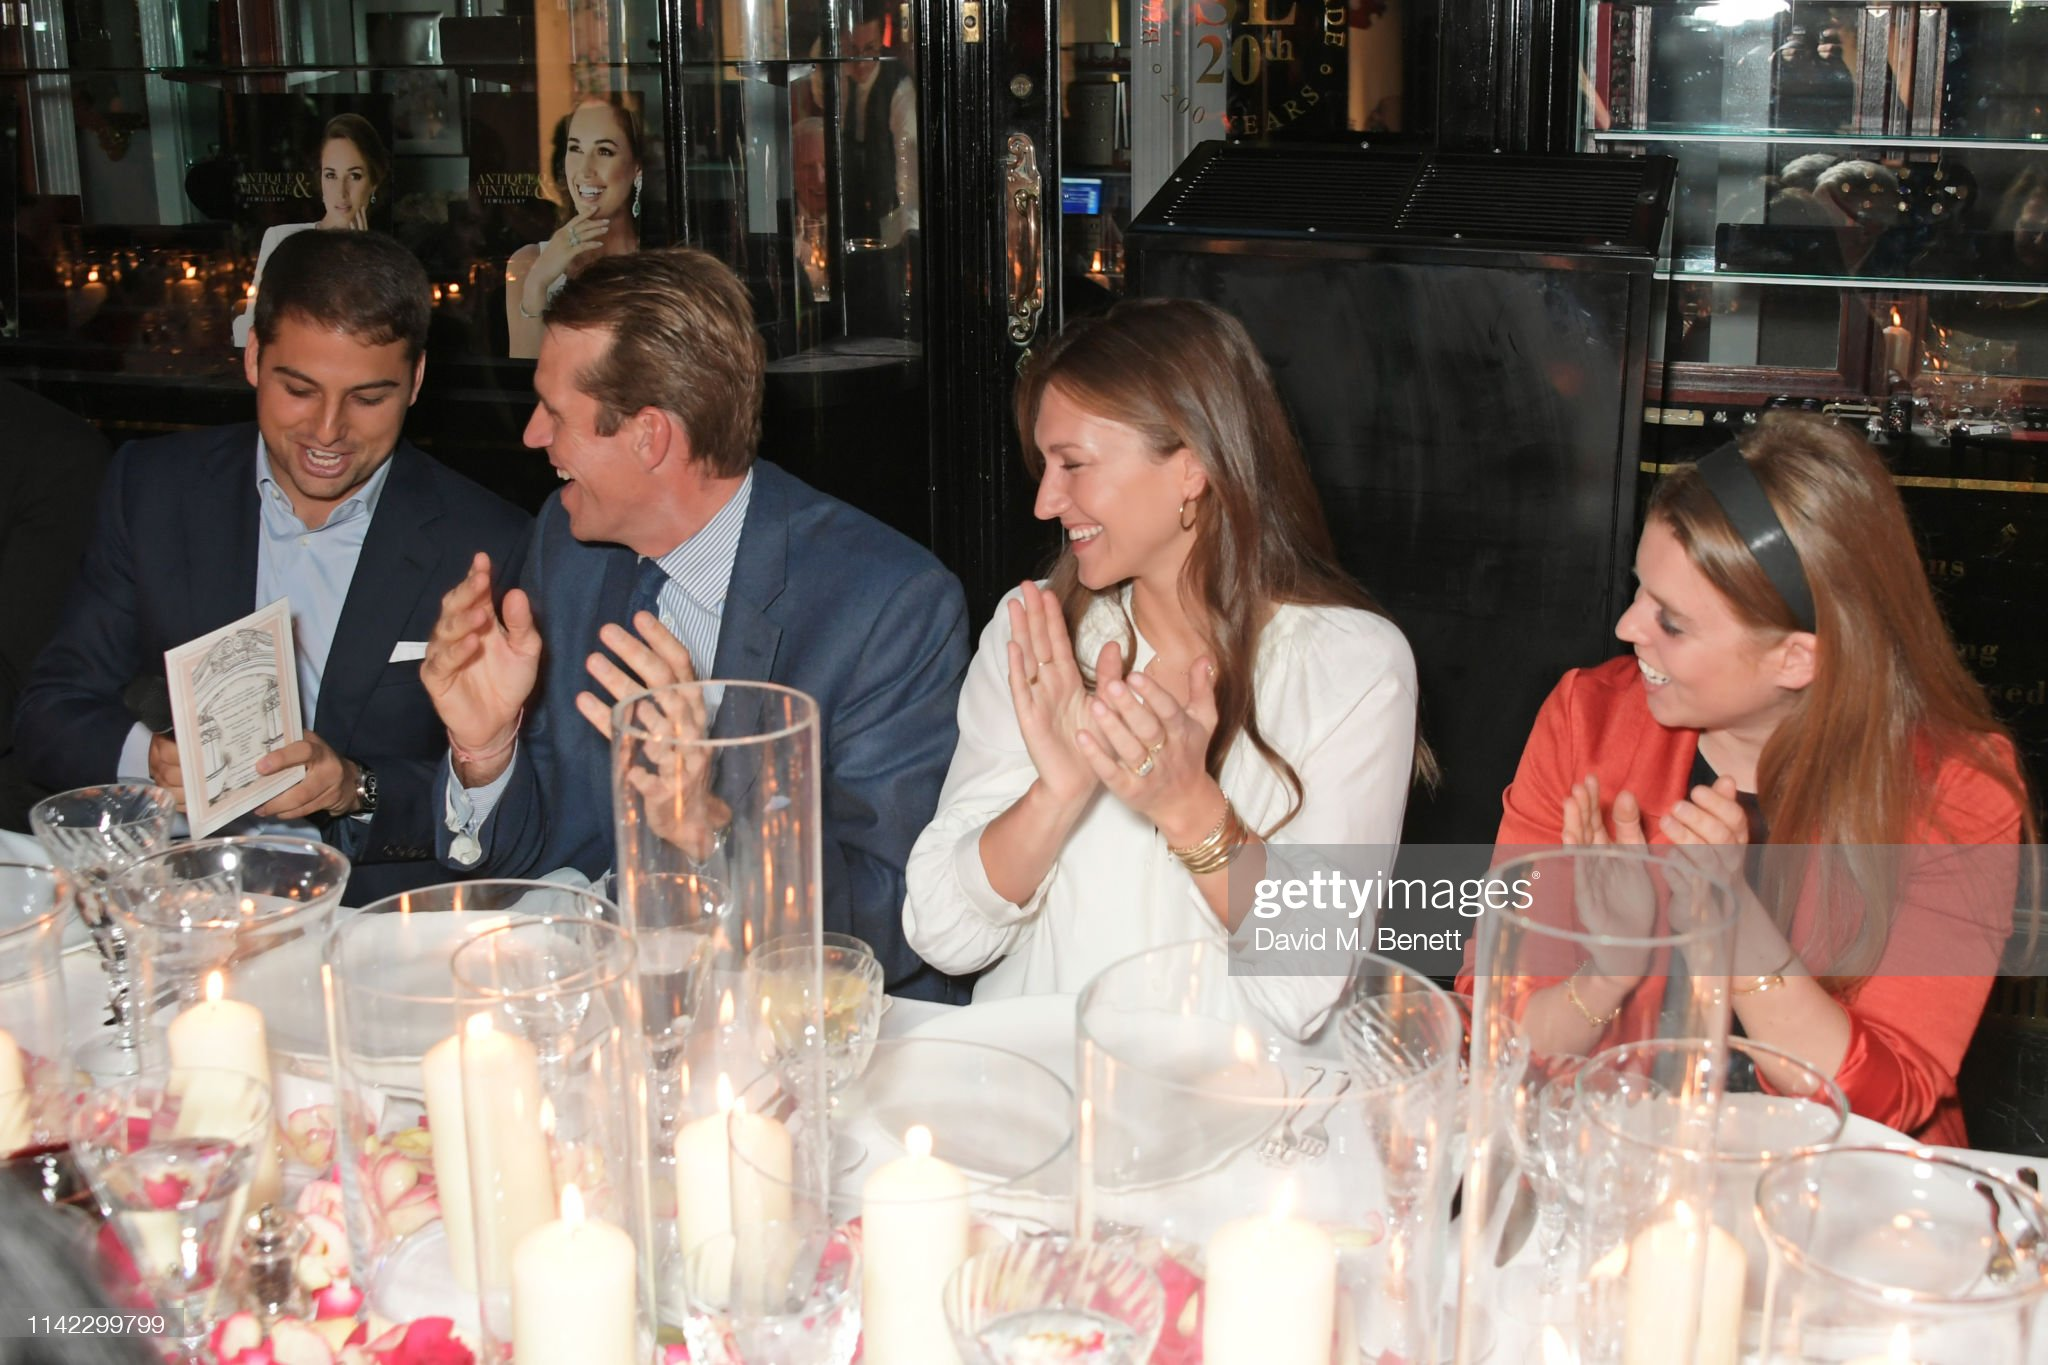 https://media.gettyimages.com/photos/jamie-reuben-ben-elliot-maryclare-winwood-and-princess-beatrice-of-picture-id1142299799?s=2048x2048